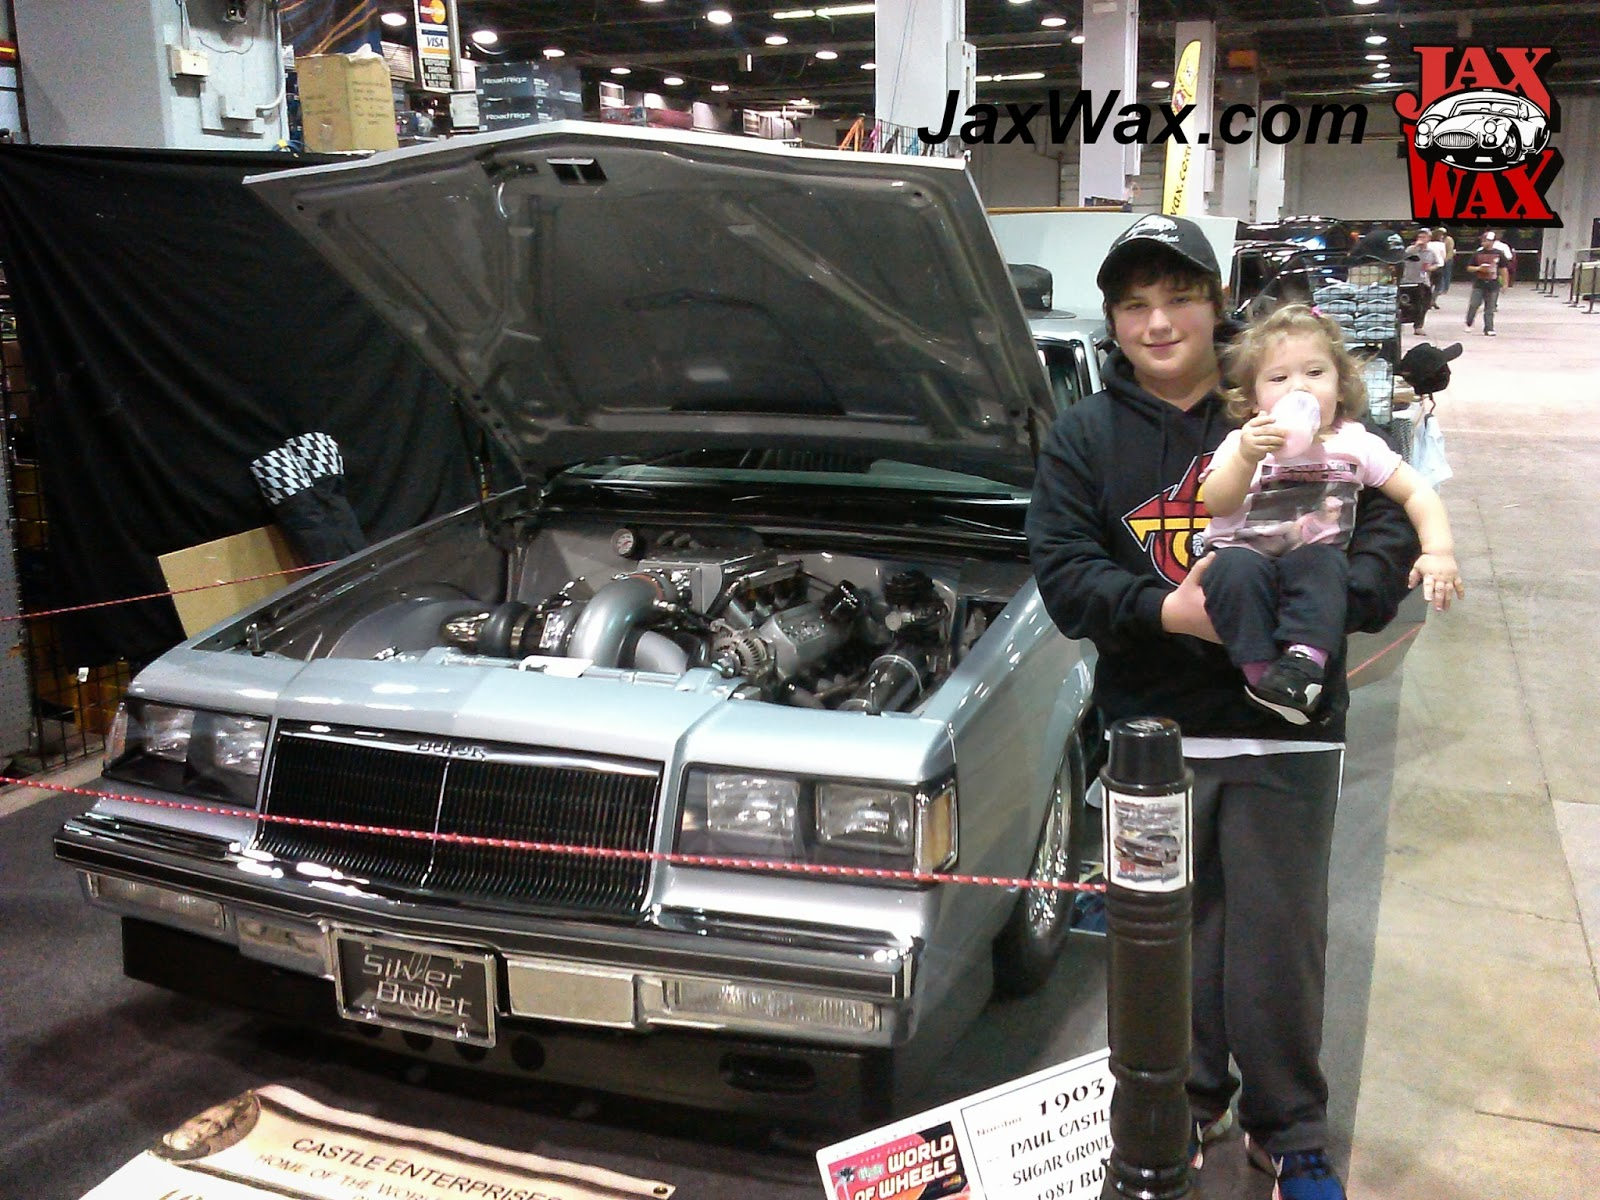 1987 Buick Turbo T Top Jax Wax Customer Chicago World of Wheels